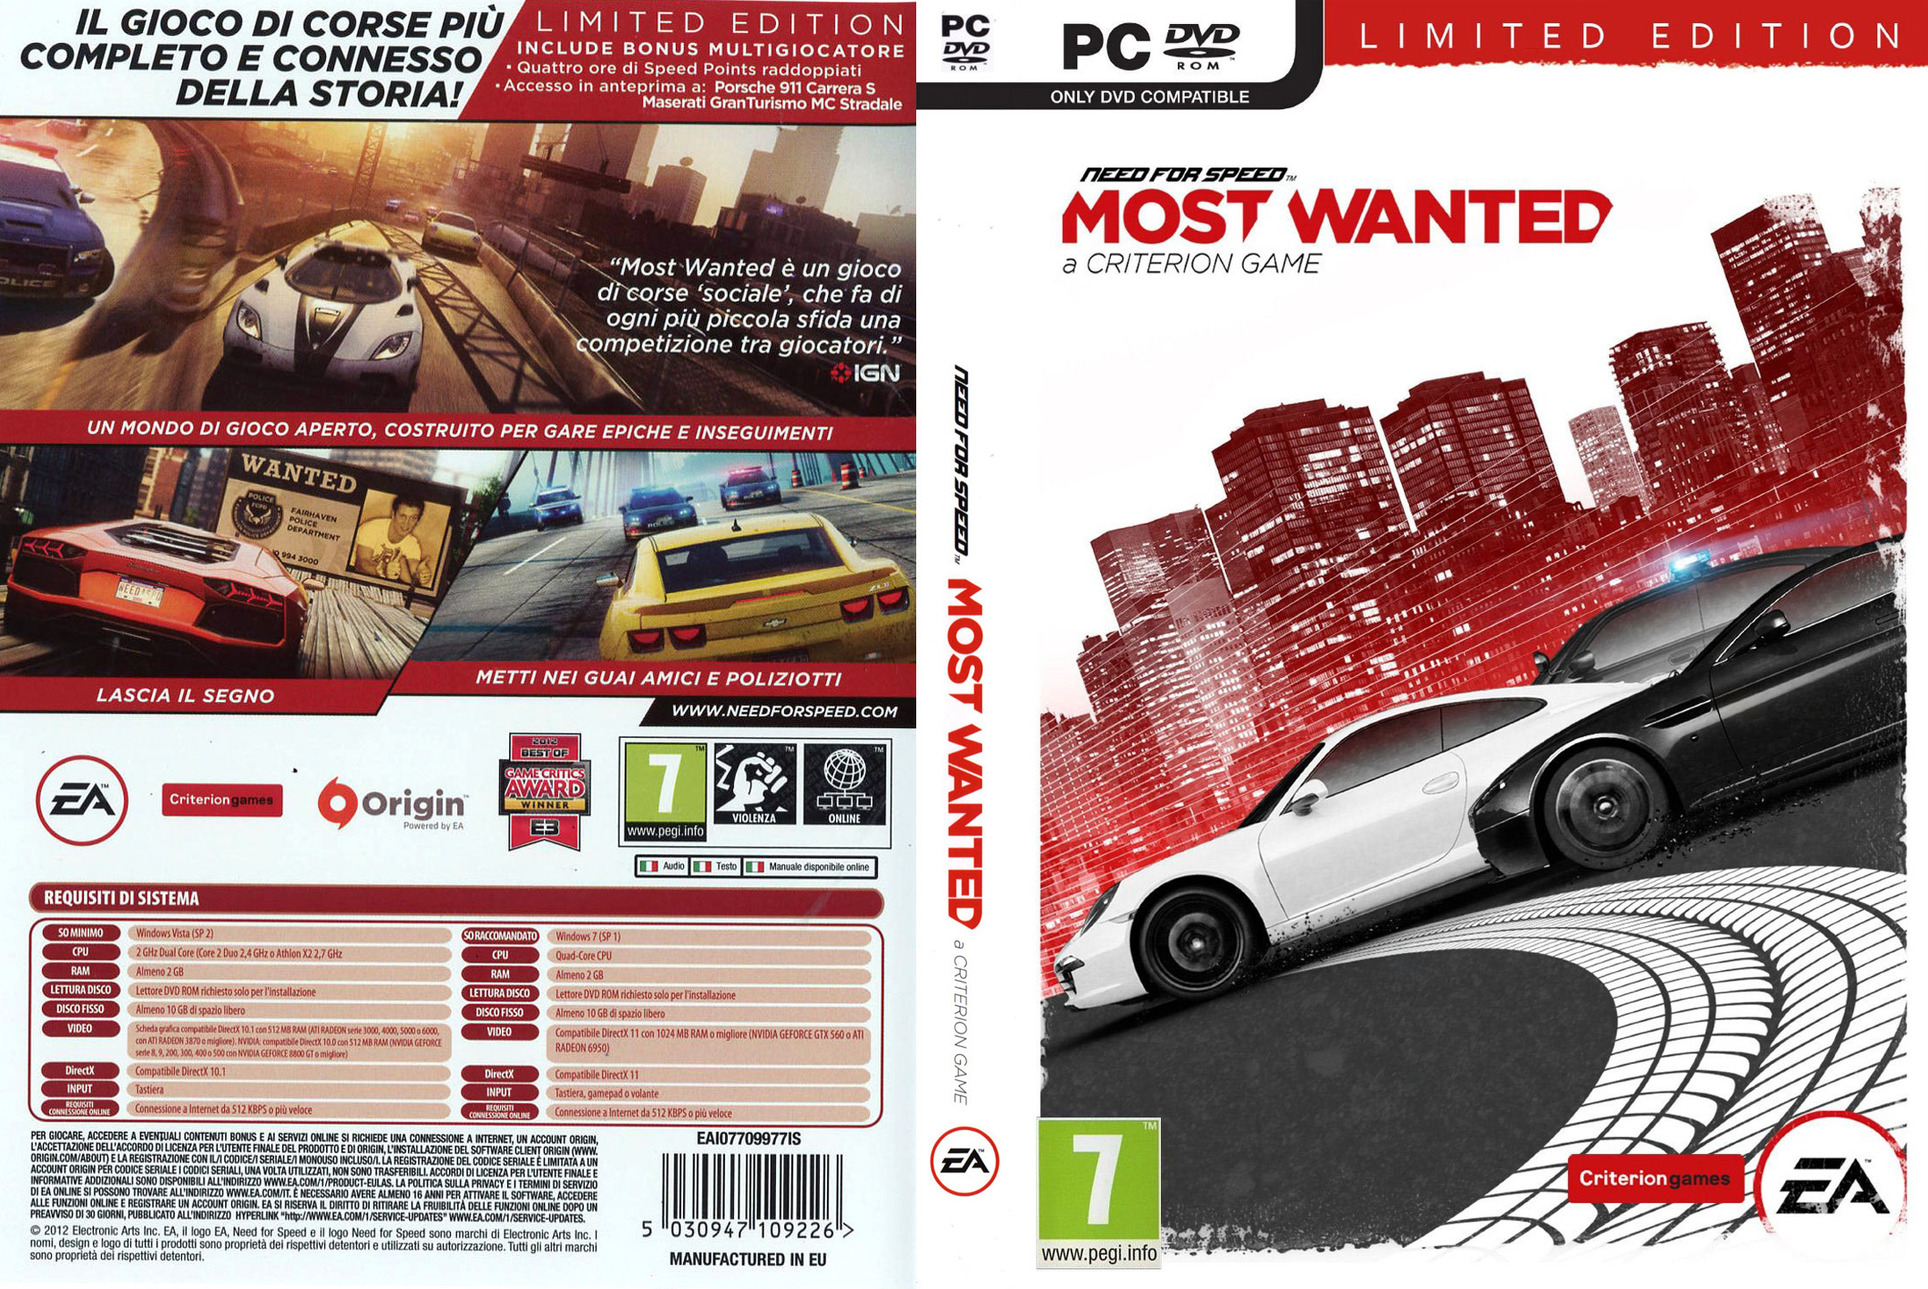 Need for speed most wanted imagen znowiaefe en Nfs most wanted para pc